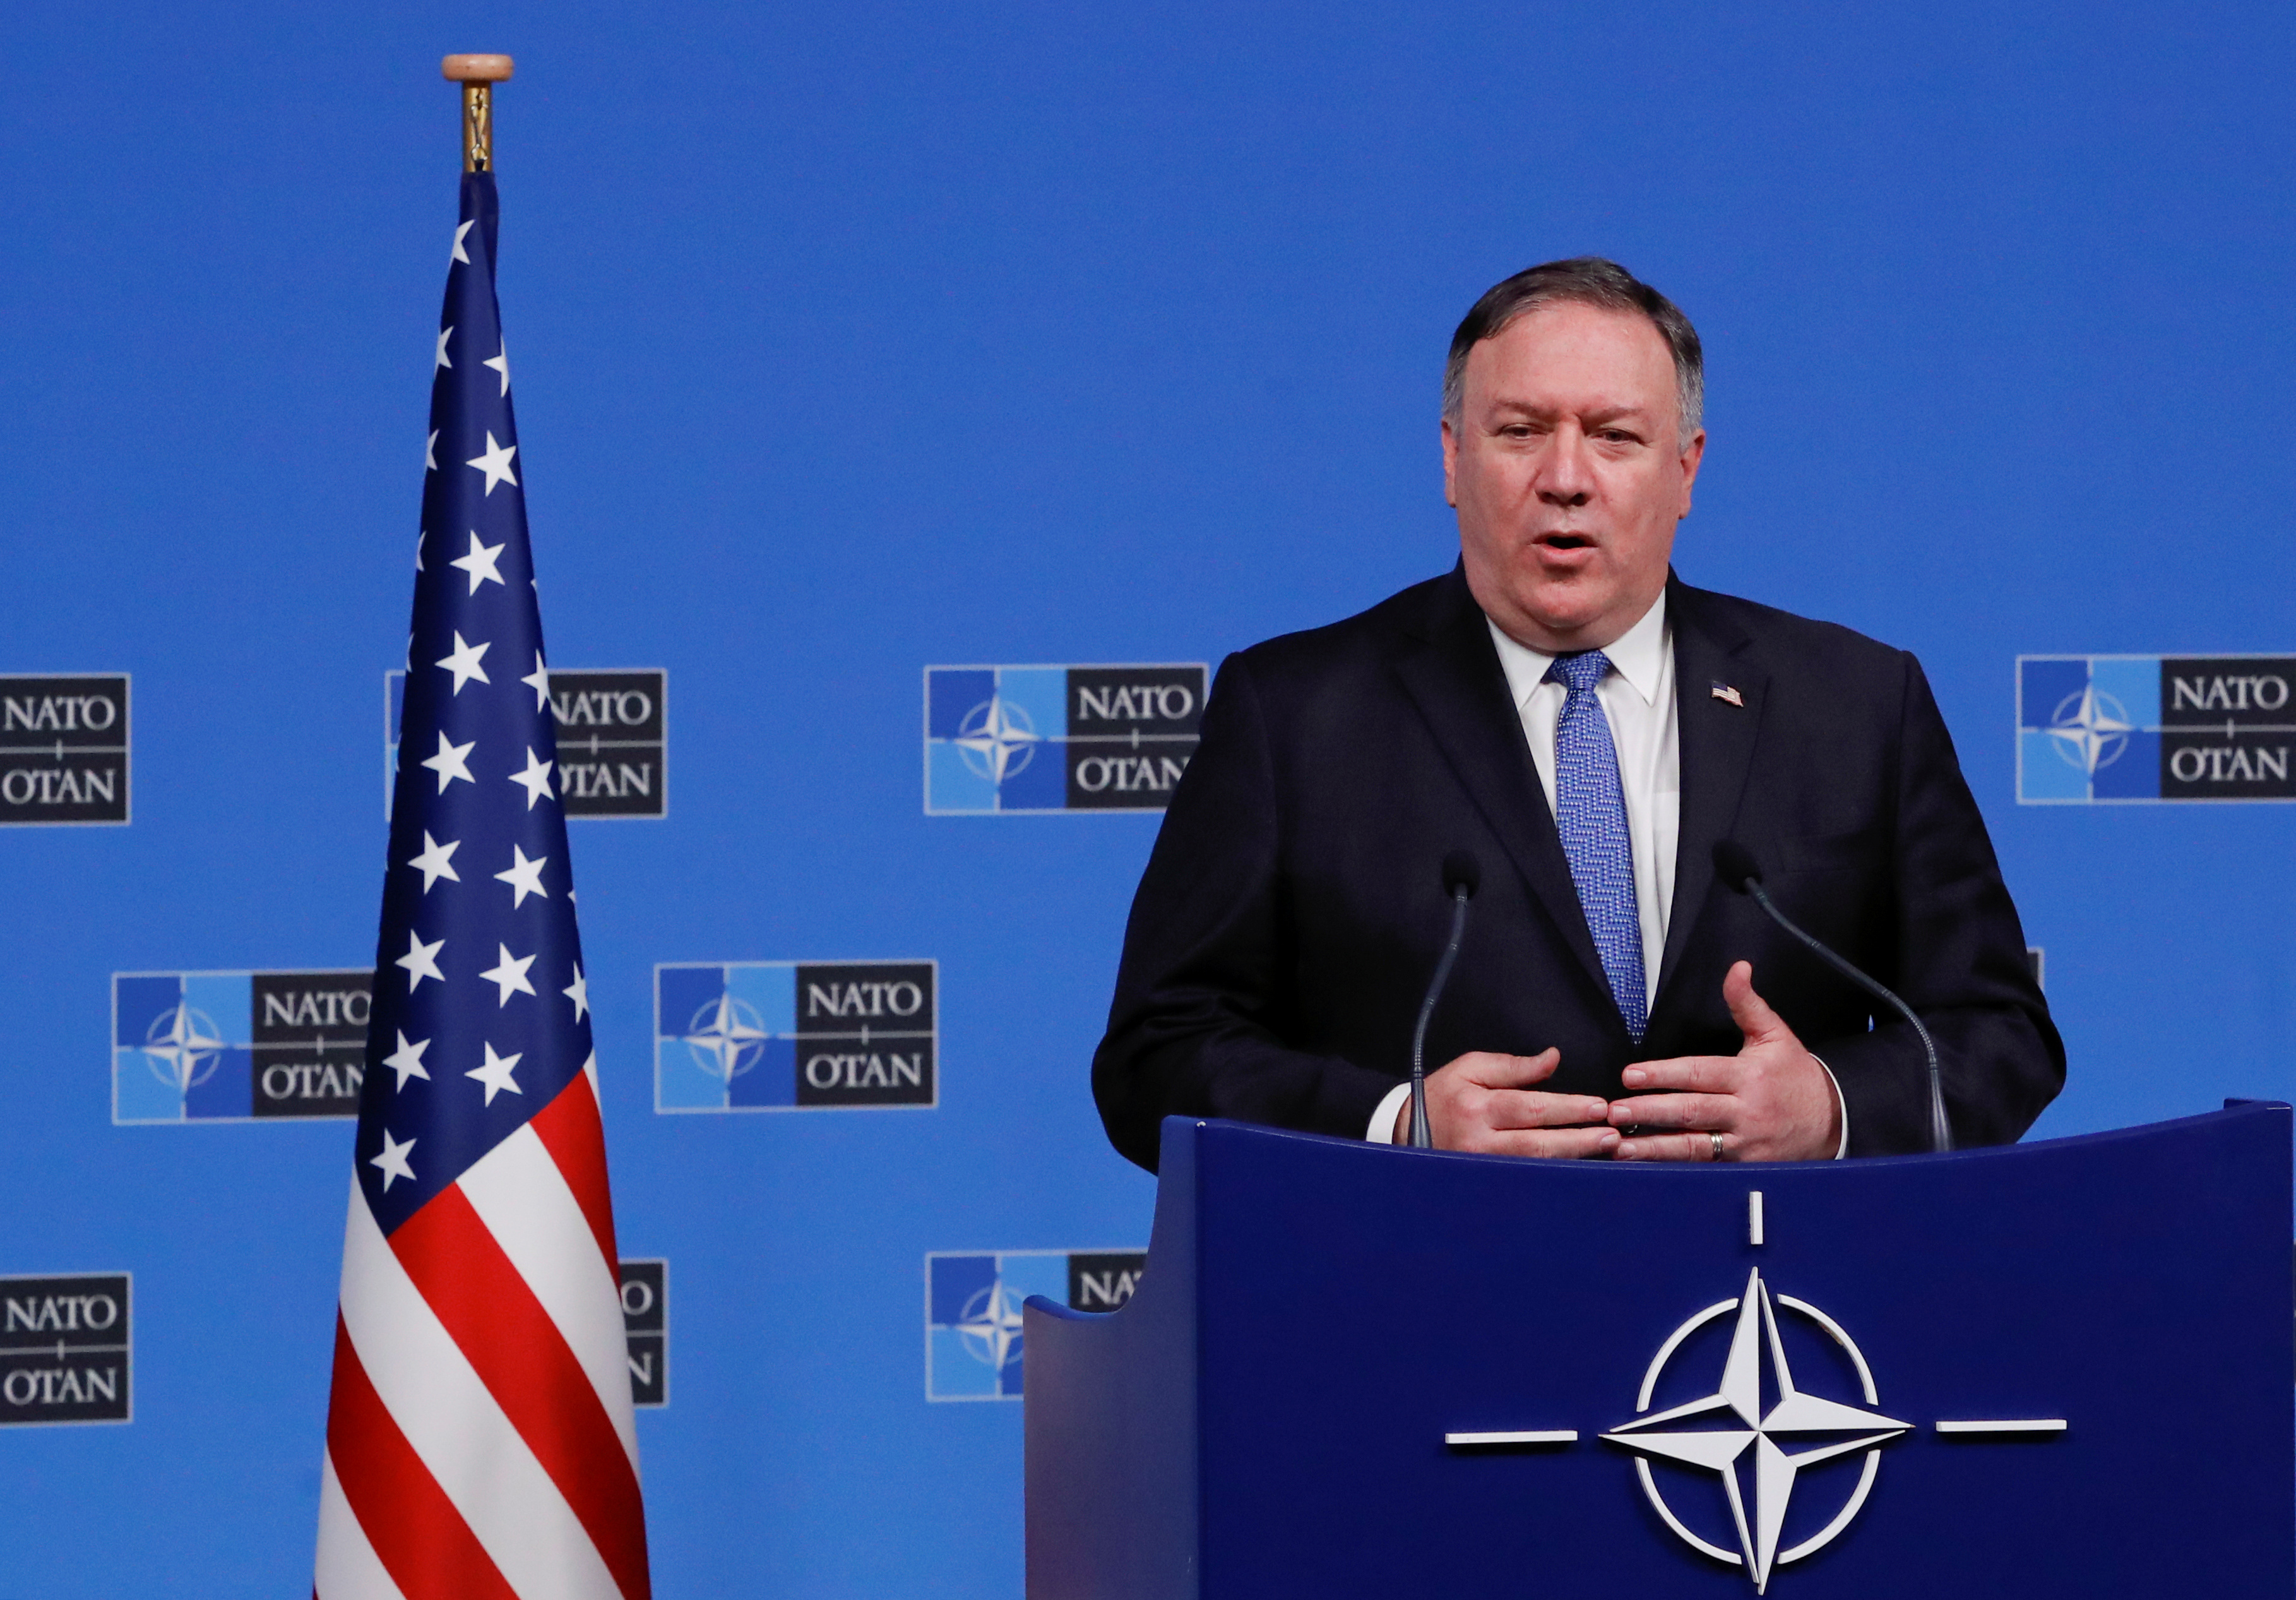 FILE PHOTO: U.S. Secretary of State Mike Pompeo speaks at a news conference during the NATO foreign ministers' meeting at the Alliance's headquarters in Brussels, Belgium, December 4, 2018. REUTERS/Yves Herman